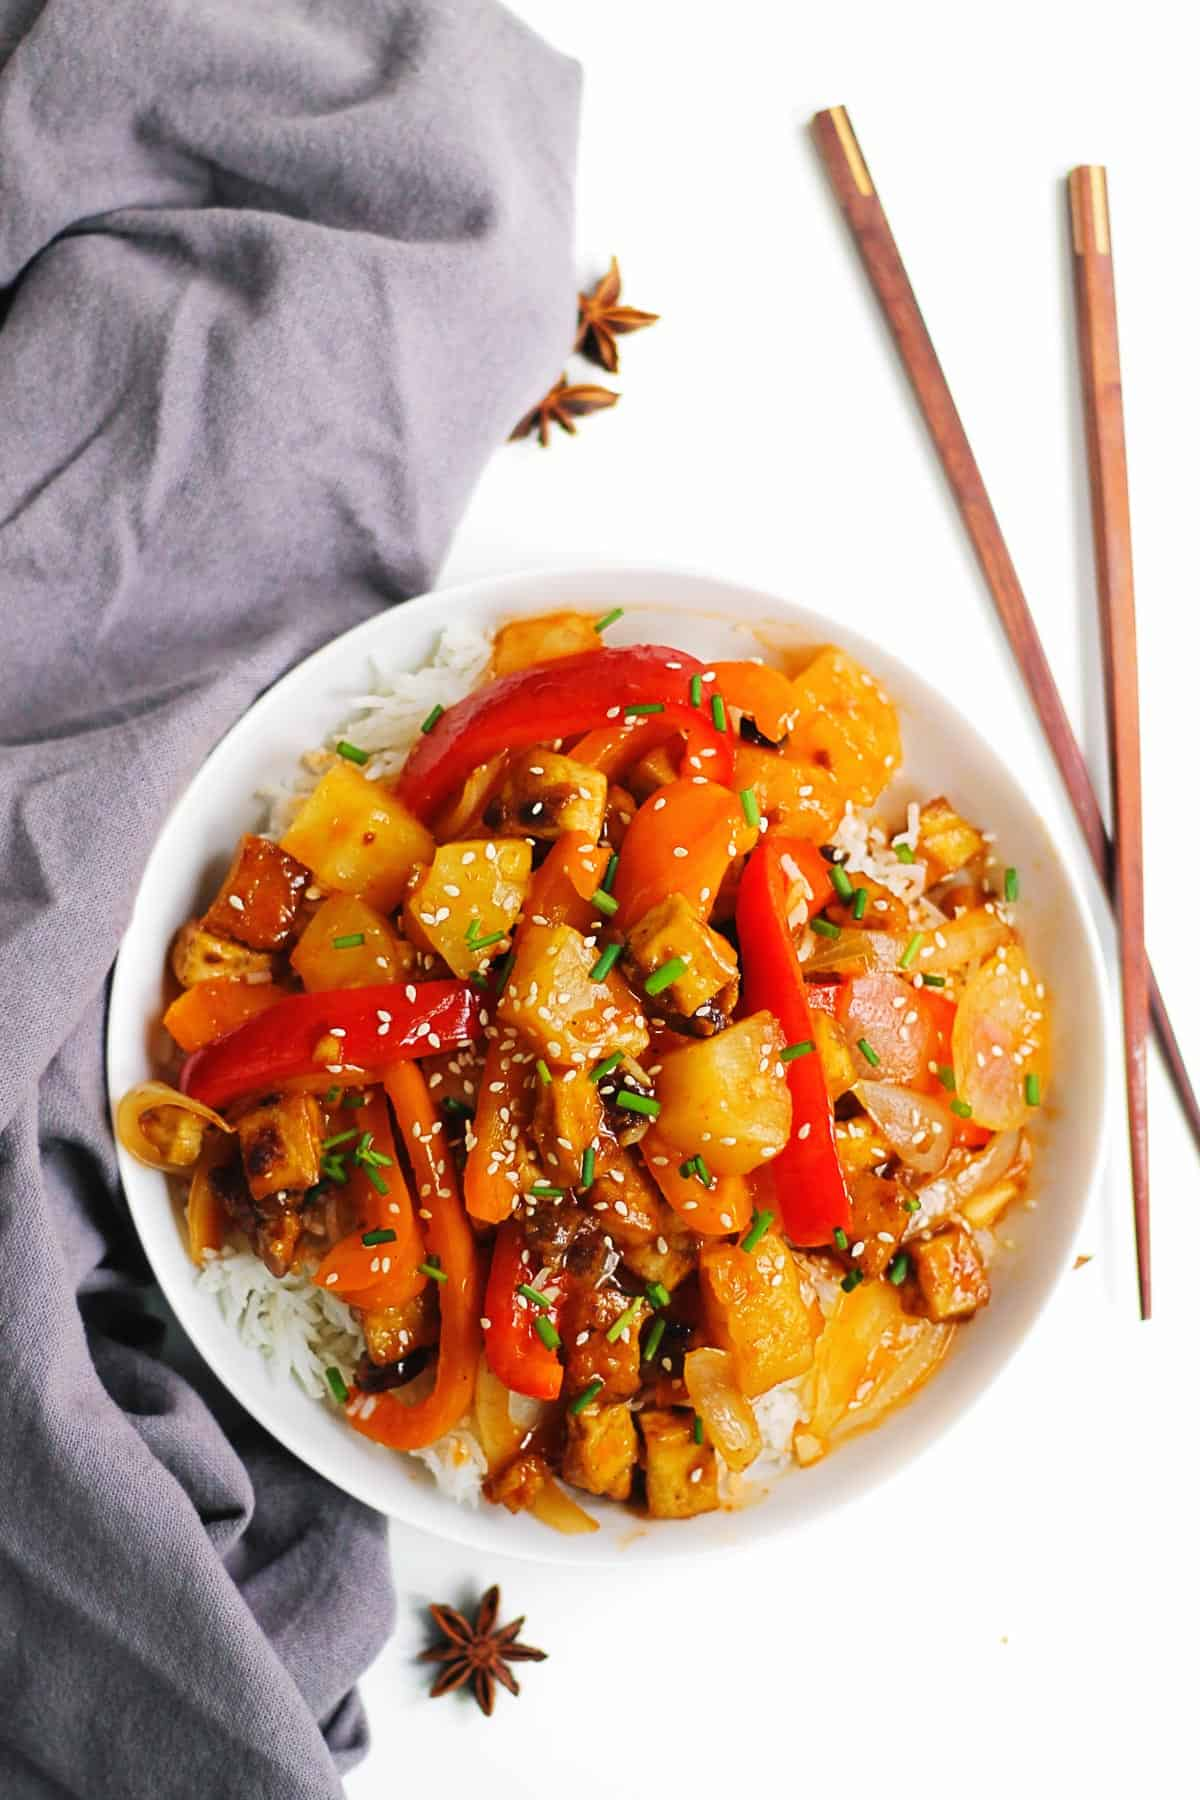 Vegan sweet and sour tofu